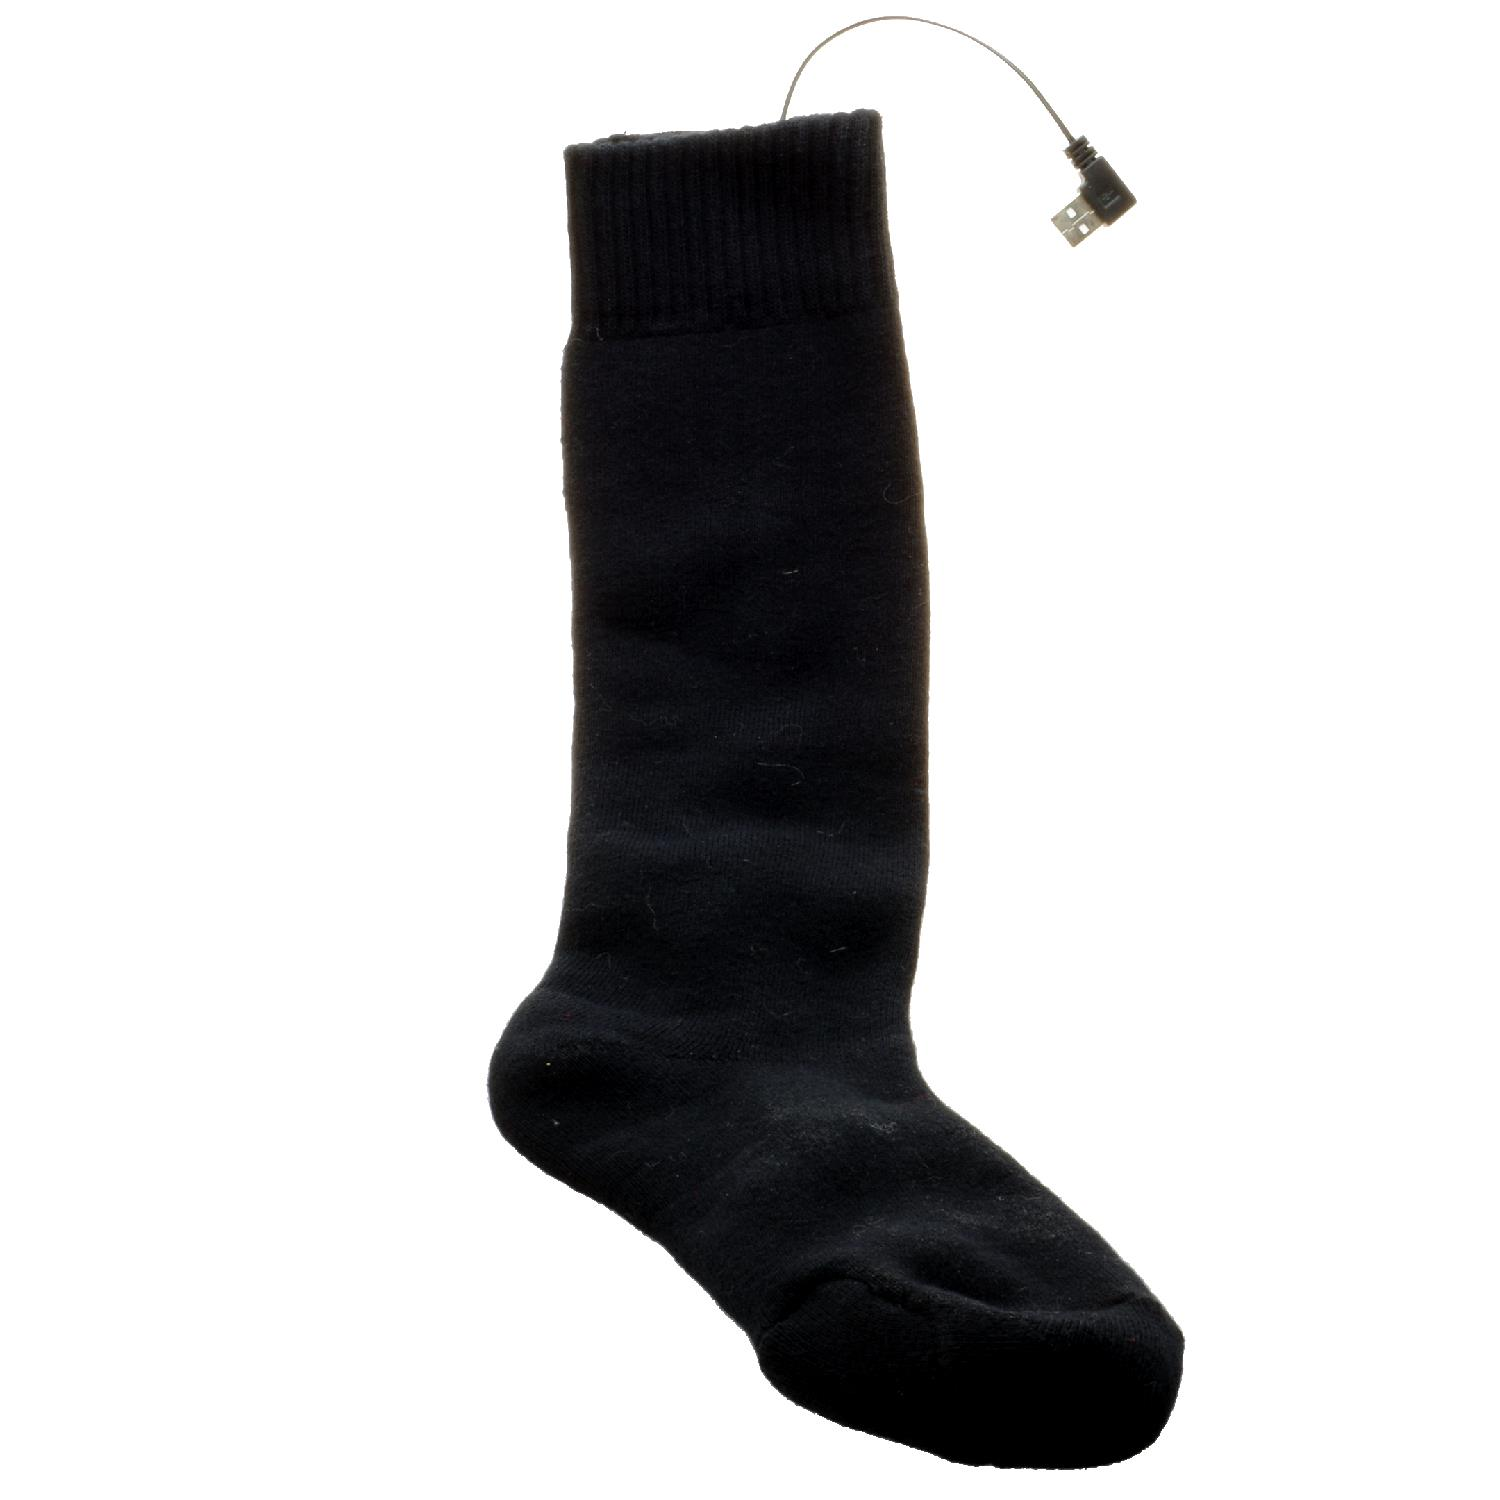 Glovii - Thermoactive socks with remote, size L